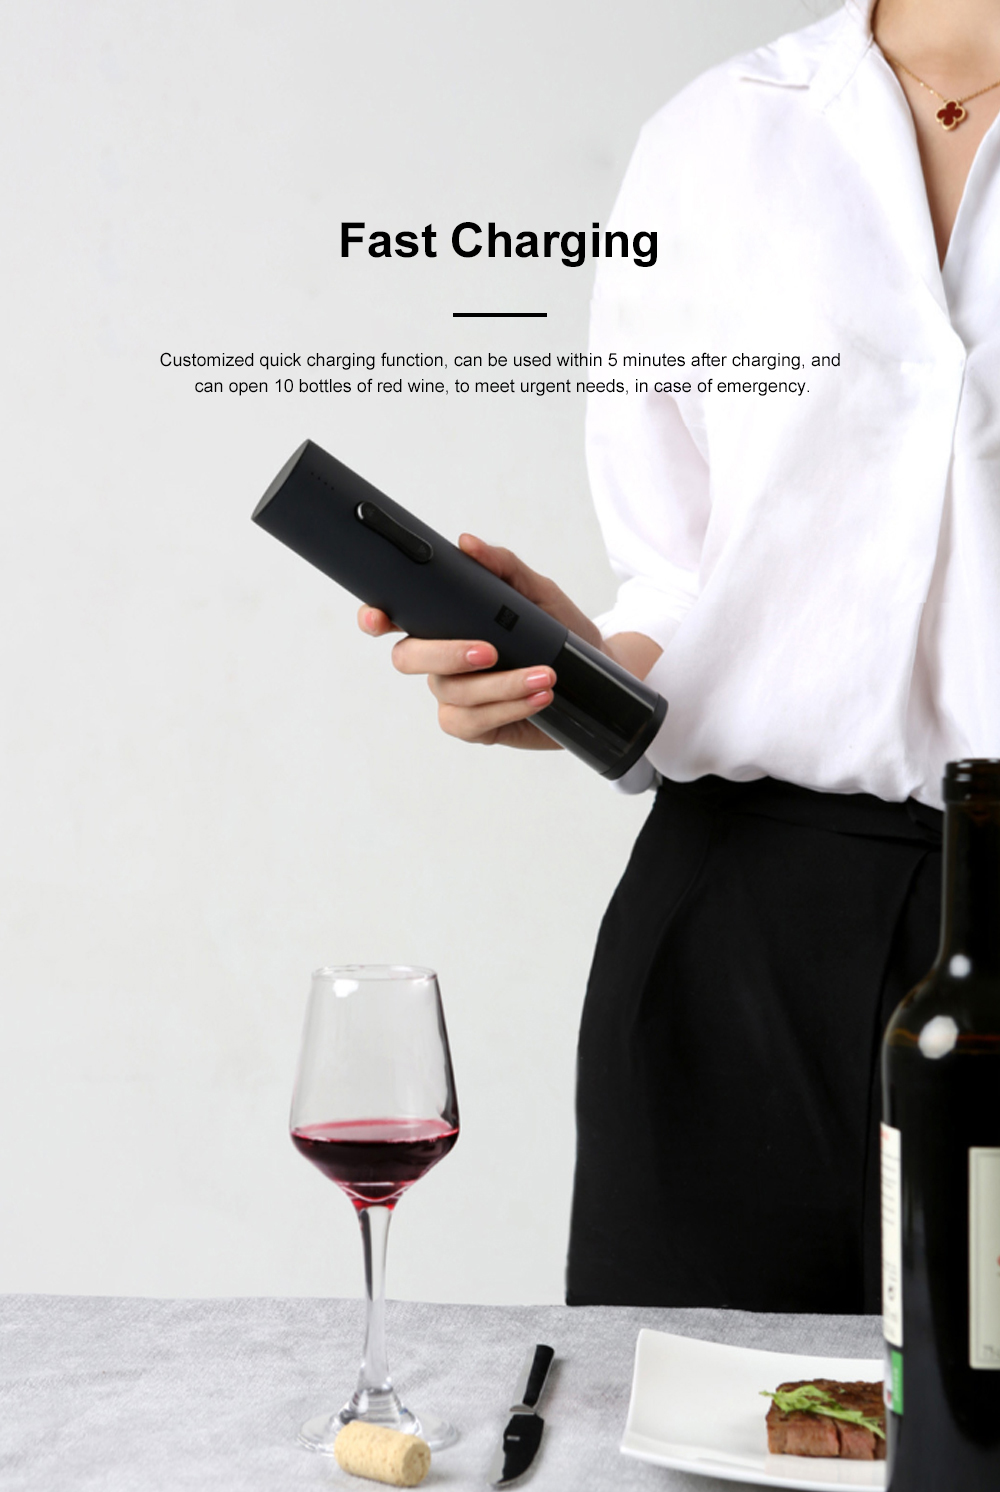 Huohou Electric Corkscrew Bottle Opener USB Rechargeable Wine Bottle Opener with Battery Display and Low Noise for 6S Quick Opening 4